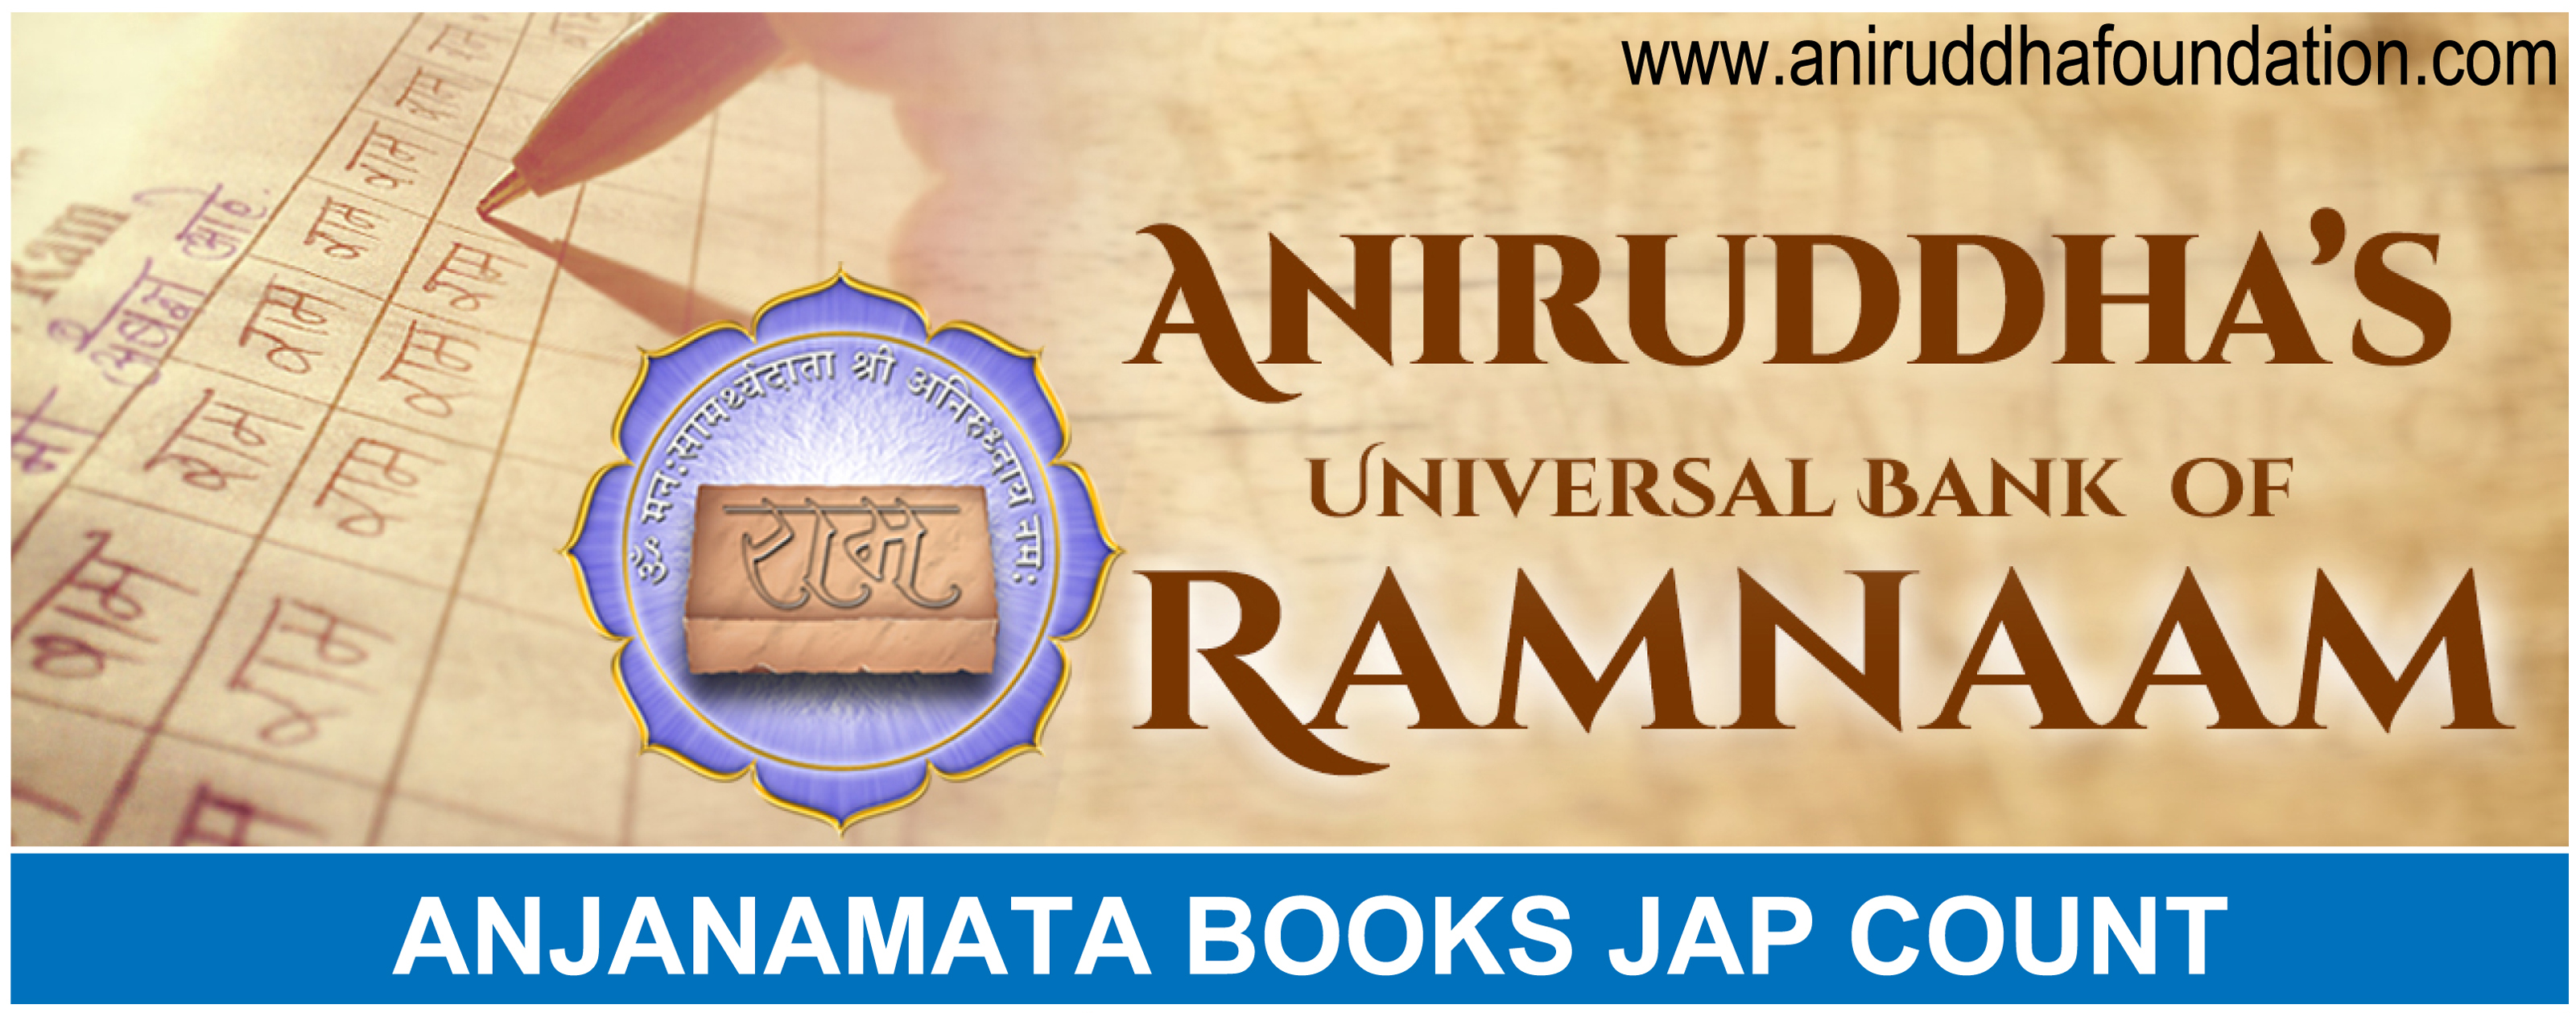 Aniruddha Universal Bank of Ramnam